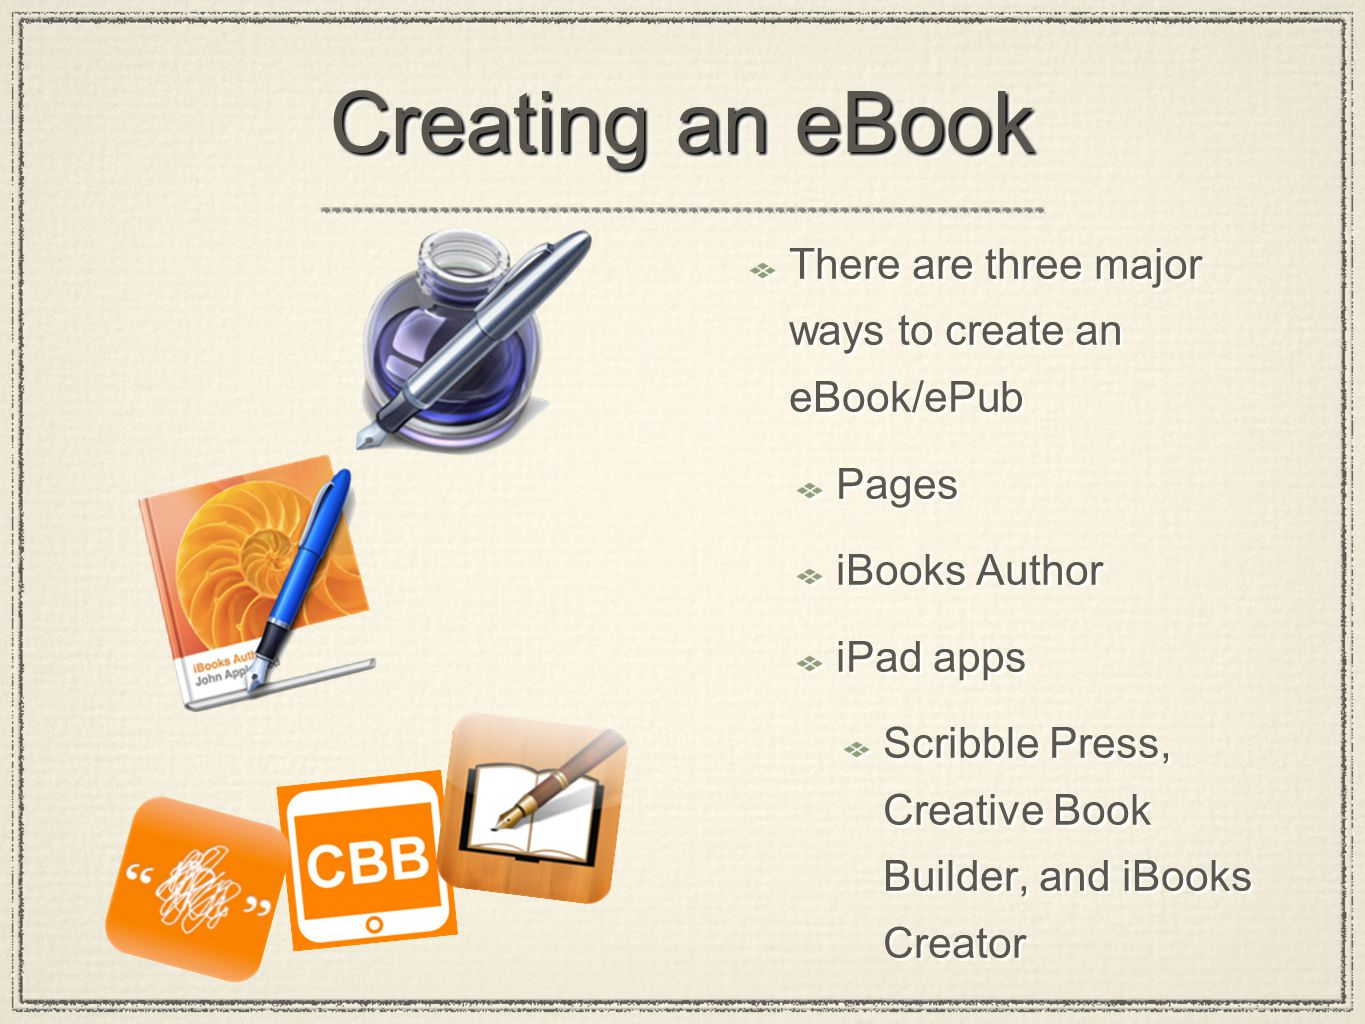 Creating an eBook There are three major ways to create an eBook/ePub Pages iBooks Author iPad apps Scribble Press, Creative Book Builder, and iBooks Creator There are three major ways to create an eBook/ePub Pages iBooks Author iPad apps Scribble Press, Creative Book Builder, and iBooks Creator